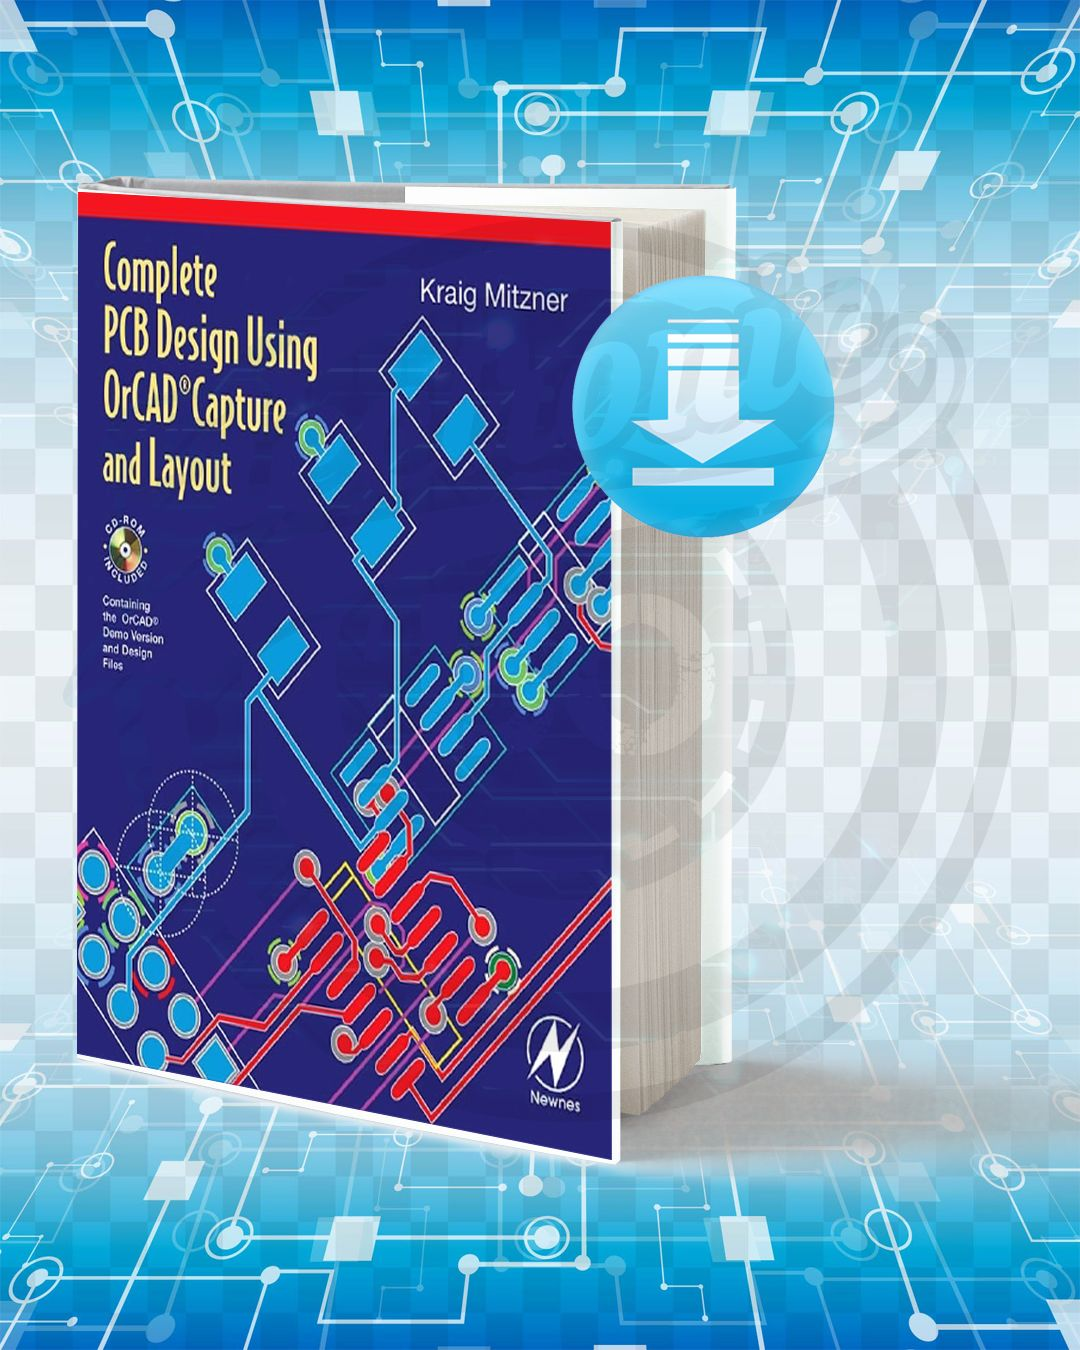 print to pdf, save as pdf, add watermark to pdf, change to pdf, export to pdf, on how to convert orcad schematic pdf